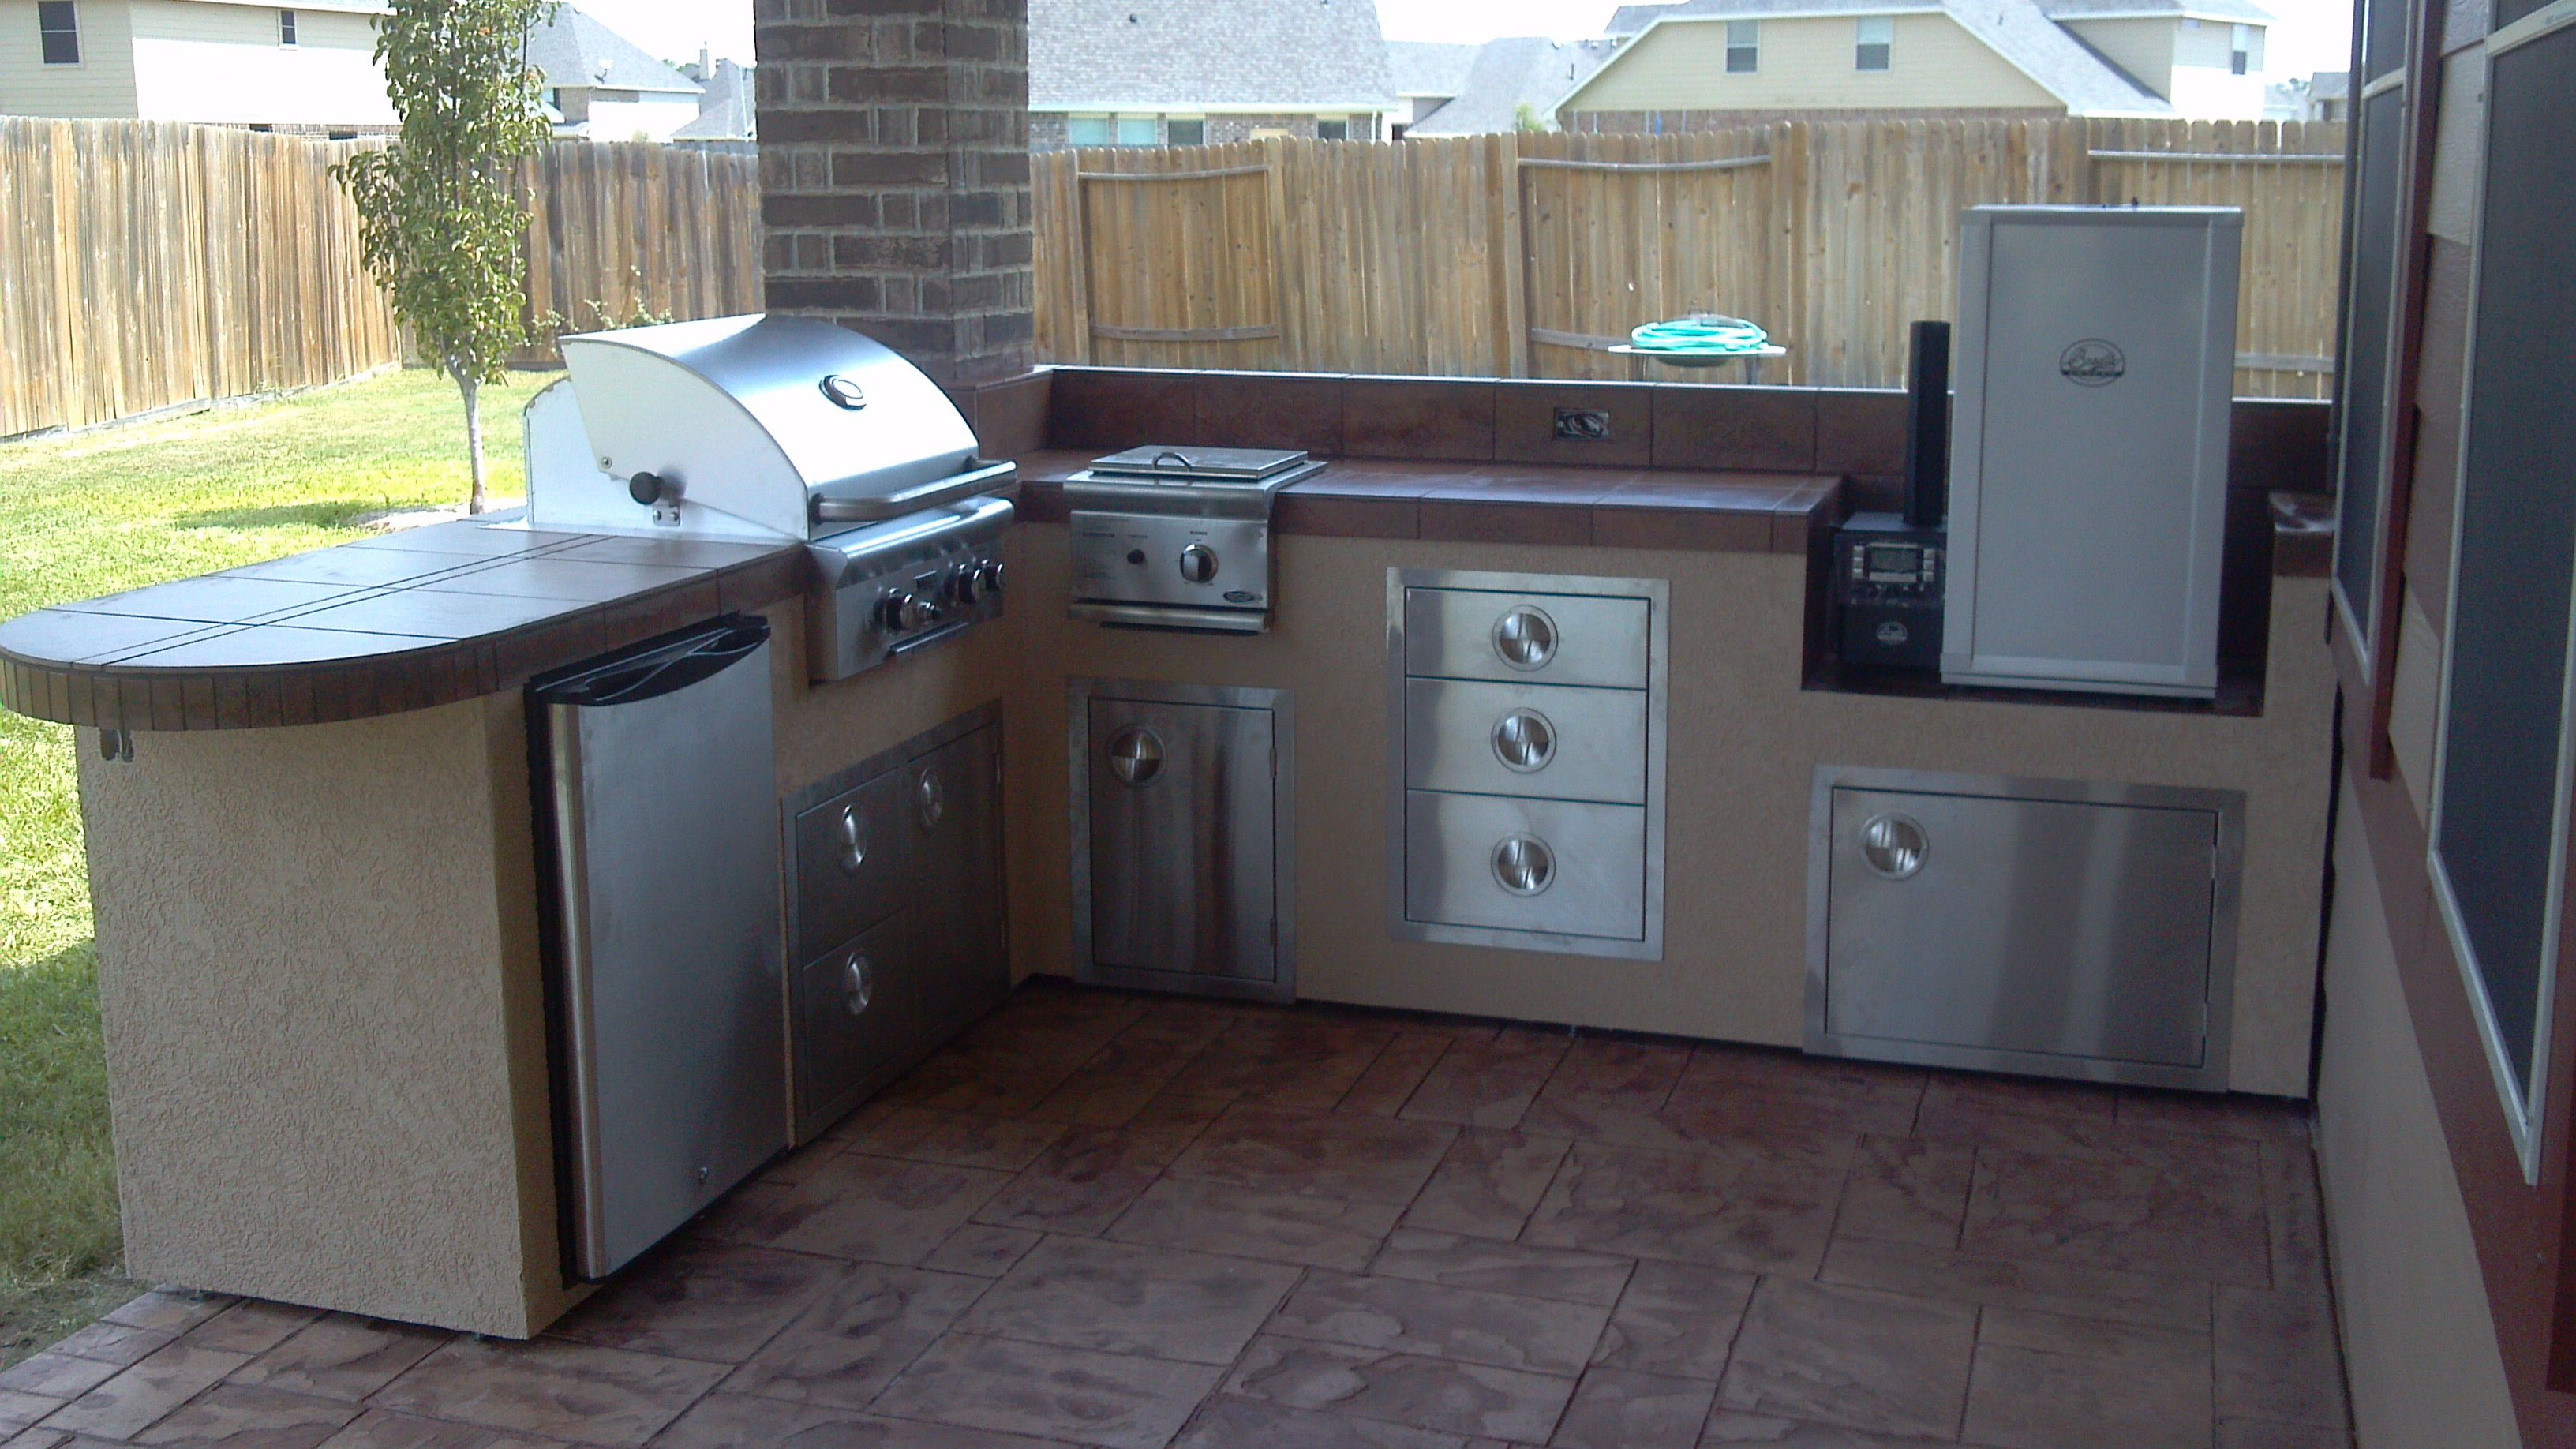 Incroyable Outdoor Kitchens With Smoker   Yahoo Image Search Results